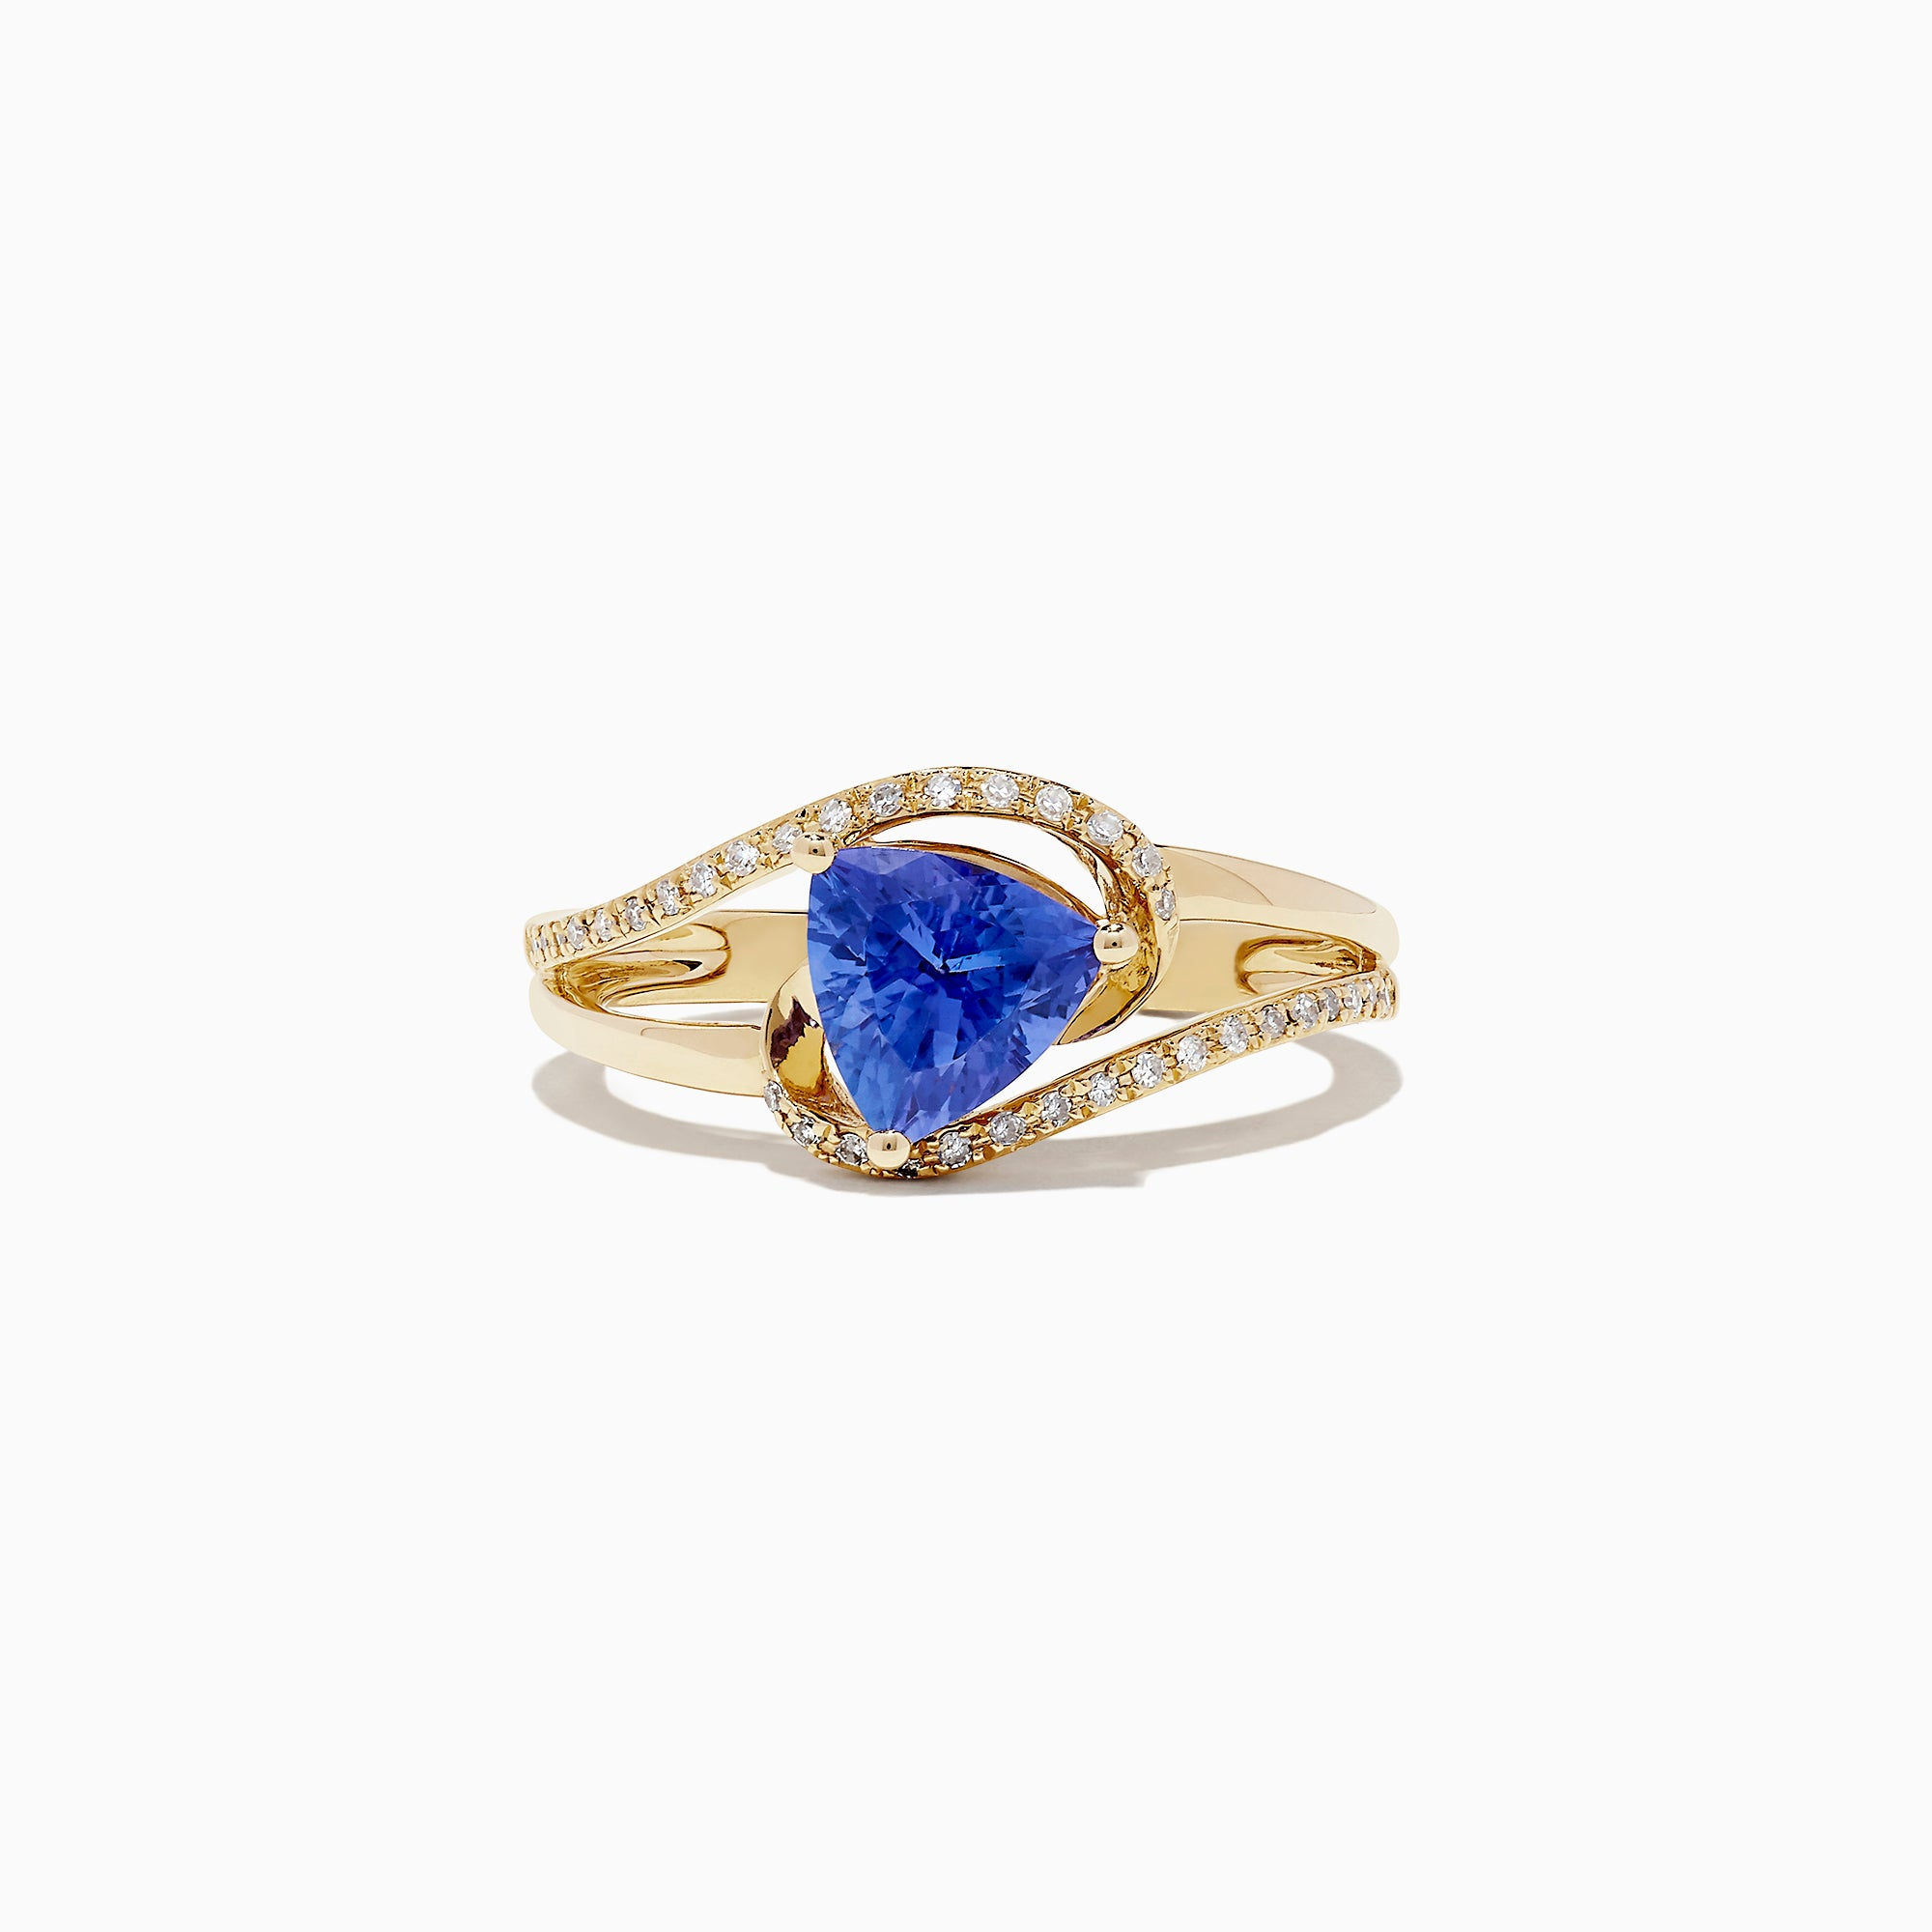 Effy 14K Yellow Gold Tanzanite and Diamond Ring, 1.24 TCW